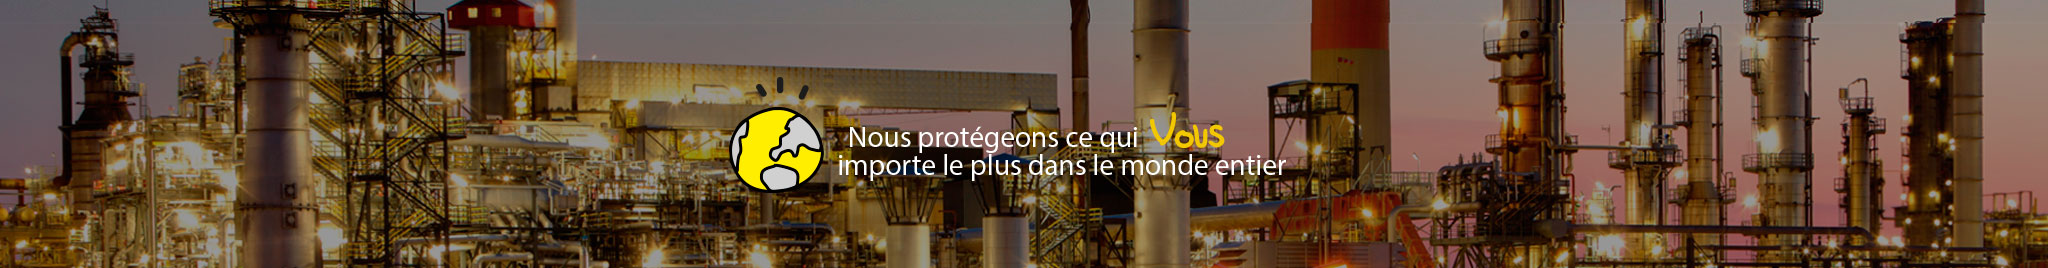 Interrupteur de courant alternatif ATEX & IECEx · Atex Delvalle